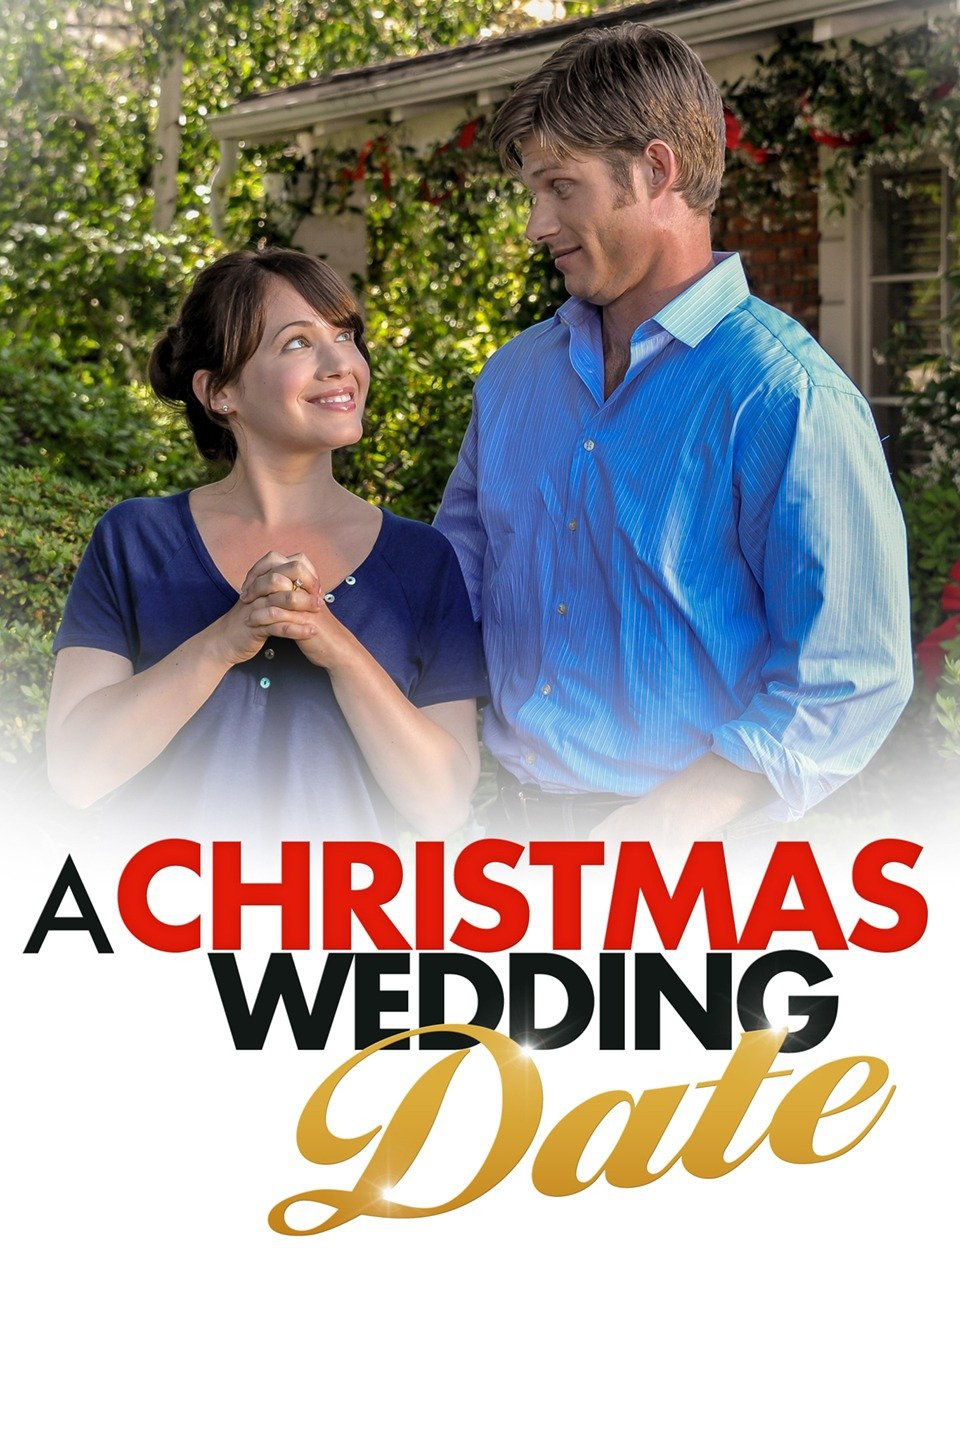 A Christmas Wedding Date.Watch A Christmas Wedding Date 2012 Online For Free The